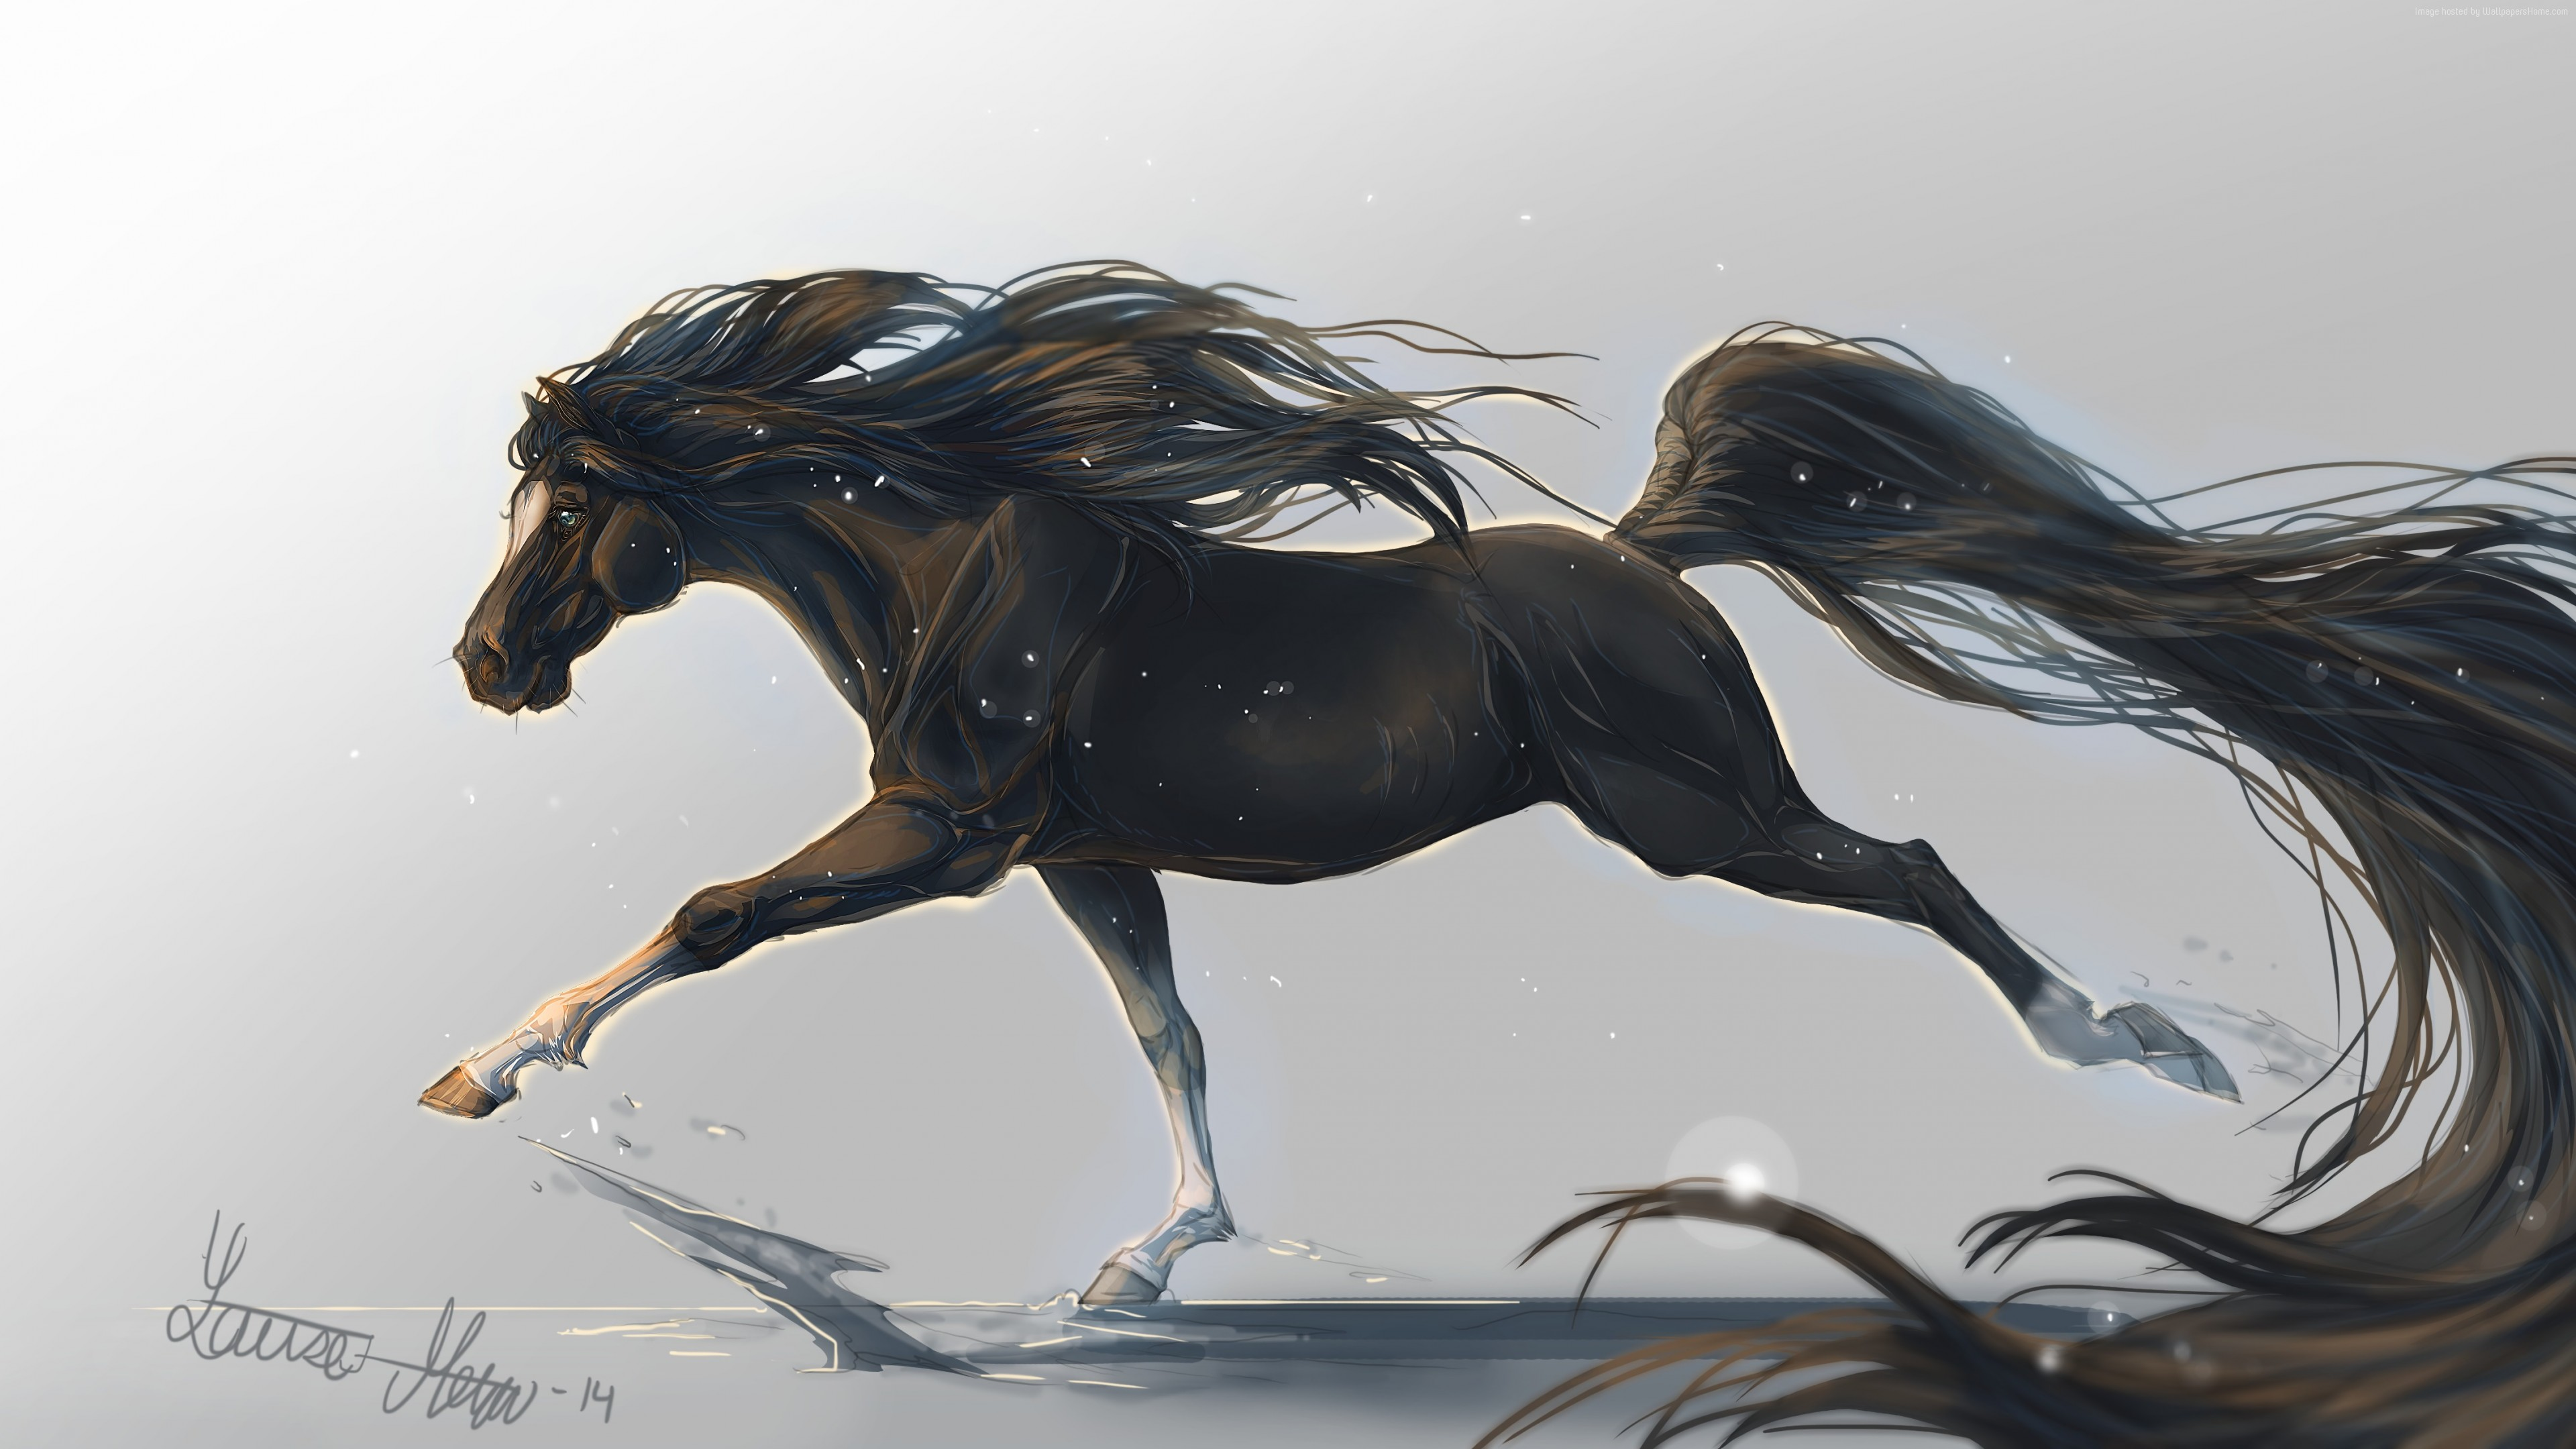 Wallpaper horse, hooves, 5k, 4k wallpaper, mane, galloping, black, white background, art, , Animals